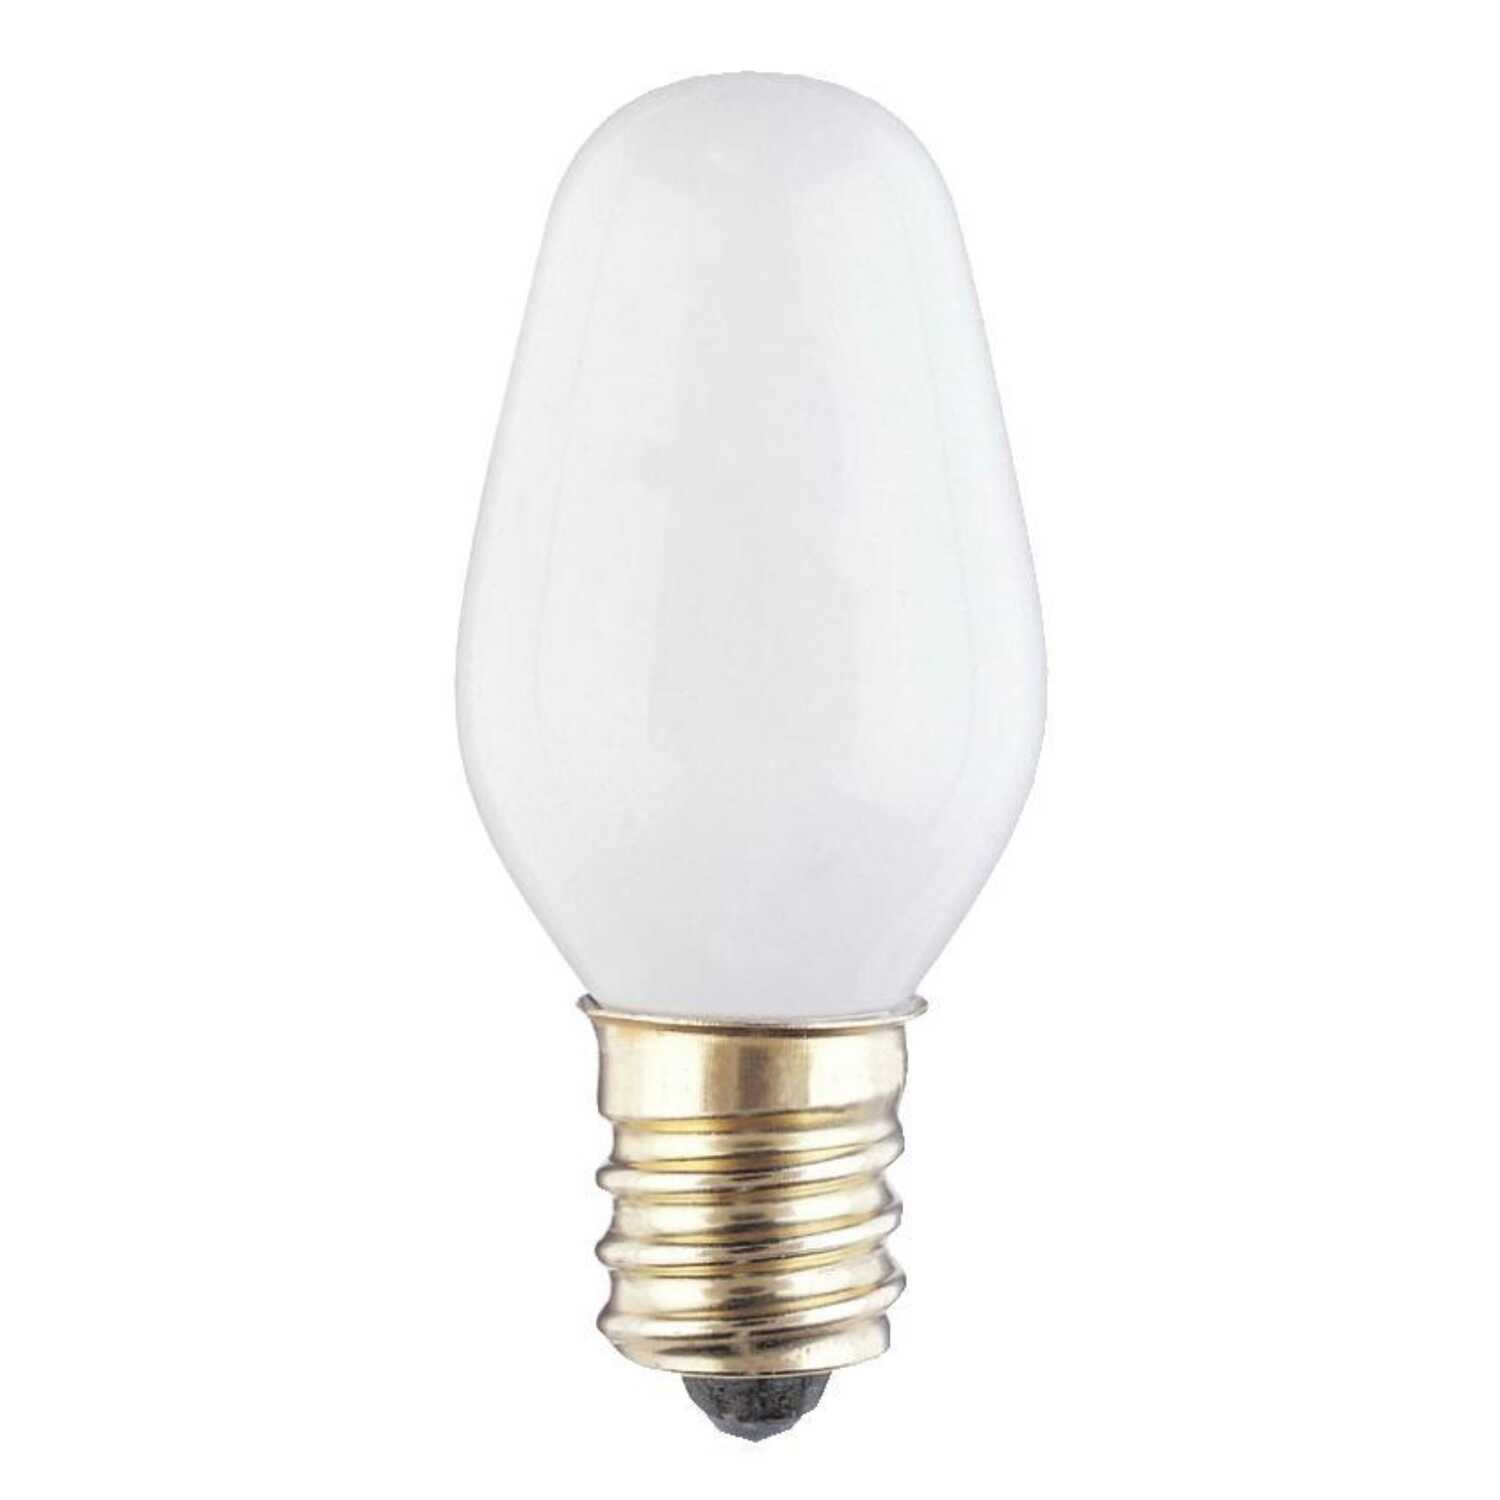 Westinghouse  4 watts C7  Incandescent Bulb  19 lumens White  4 pk Speciality